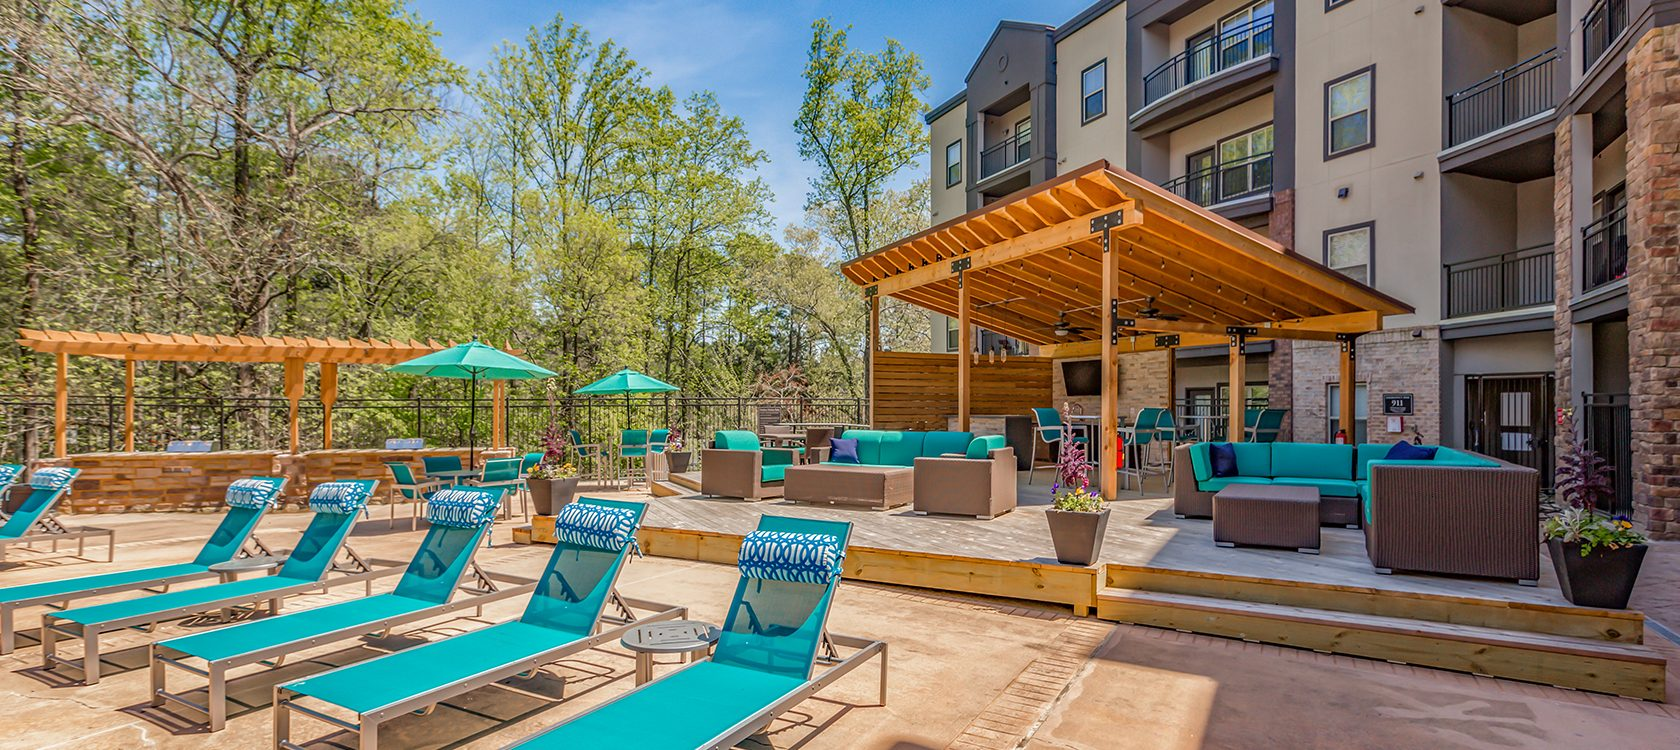 Bell Perimeter Center apartments pool area and outdoor kitchen shelf with umbrellas and lounge chairs